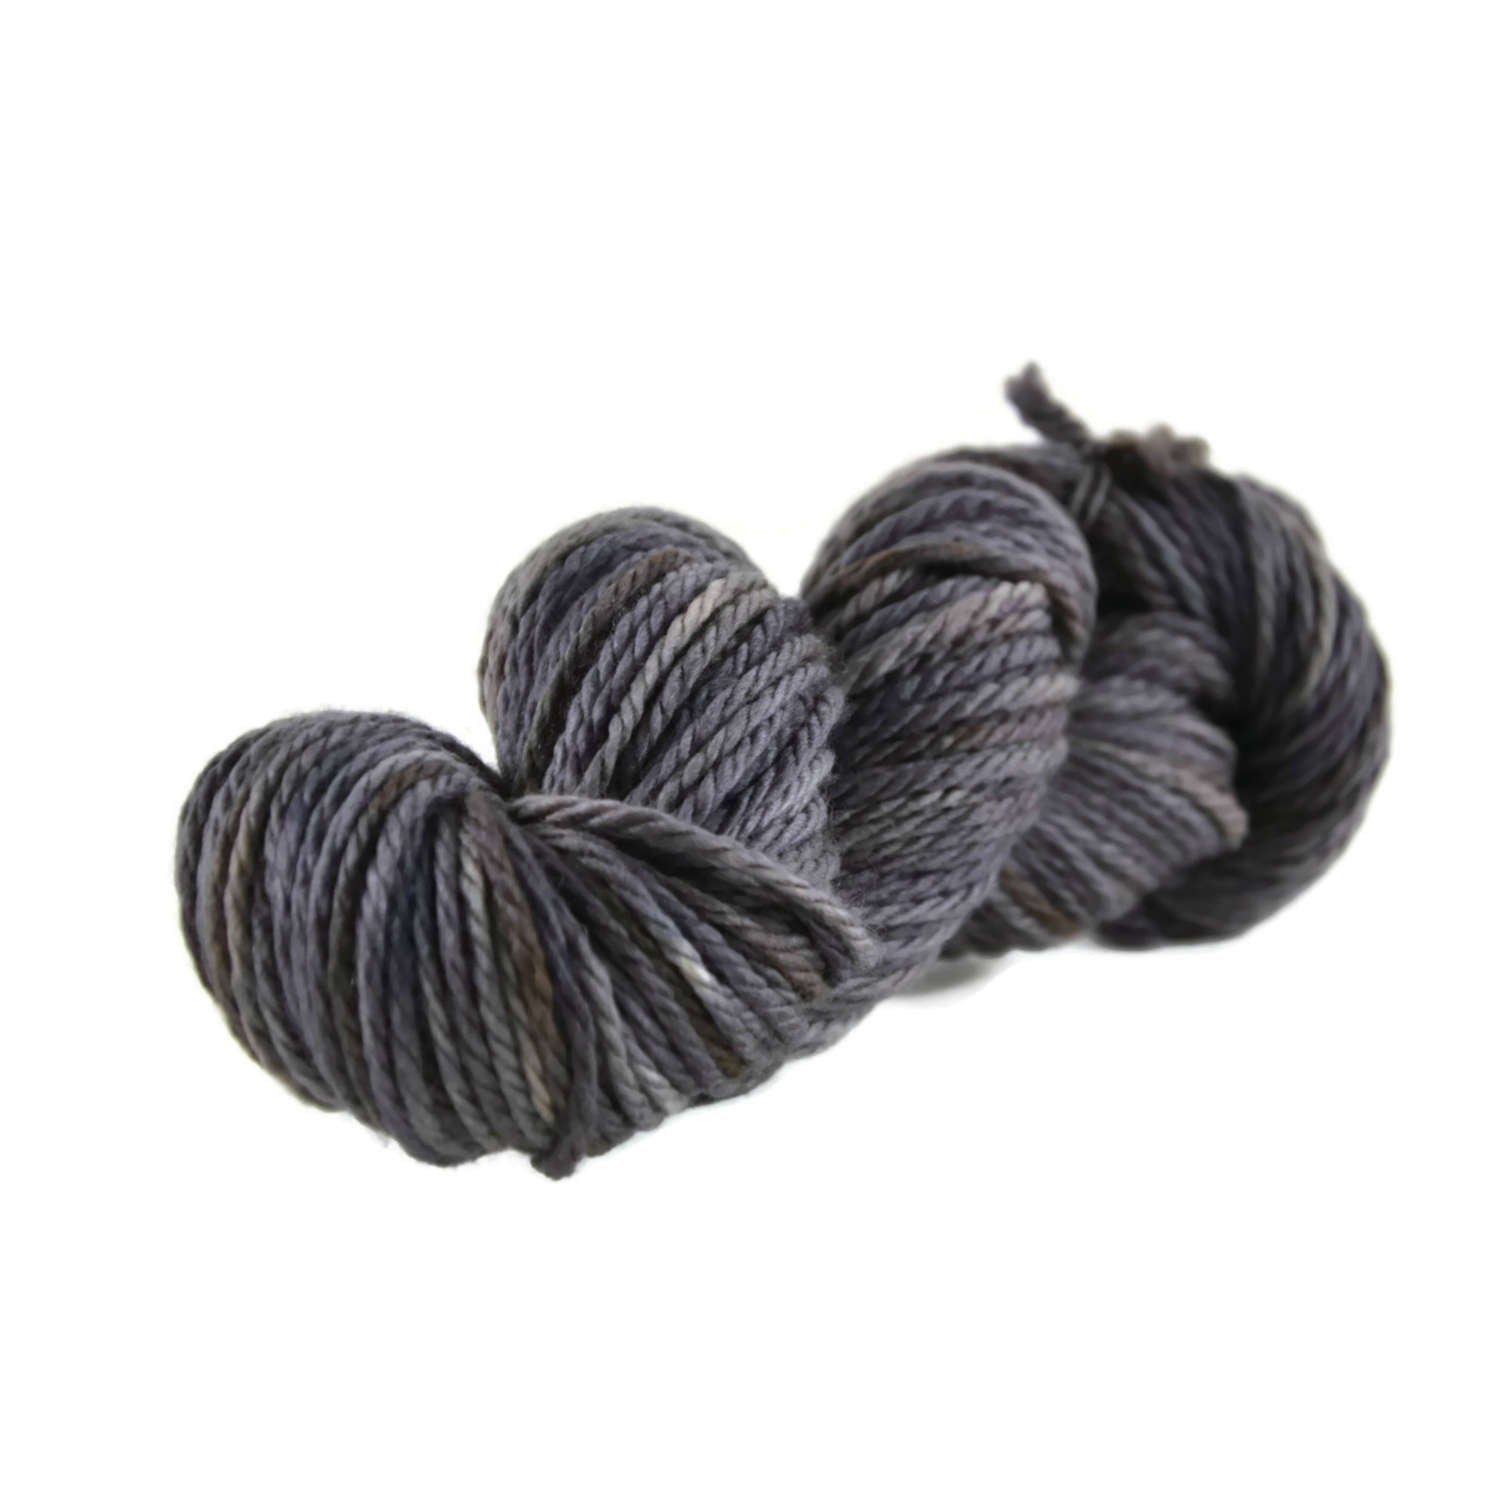 Avalon Bulky Merino Yarn - Gunmetal